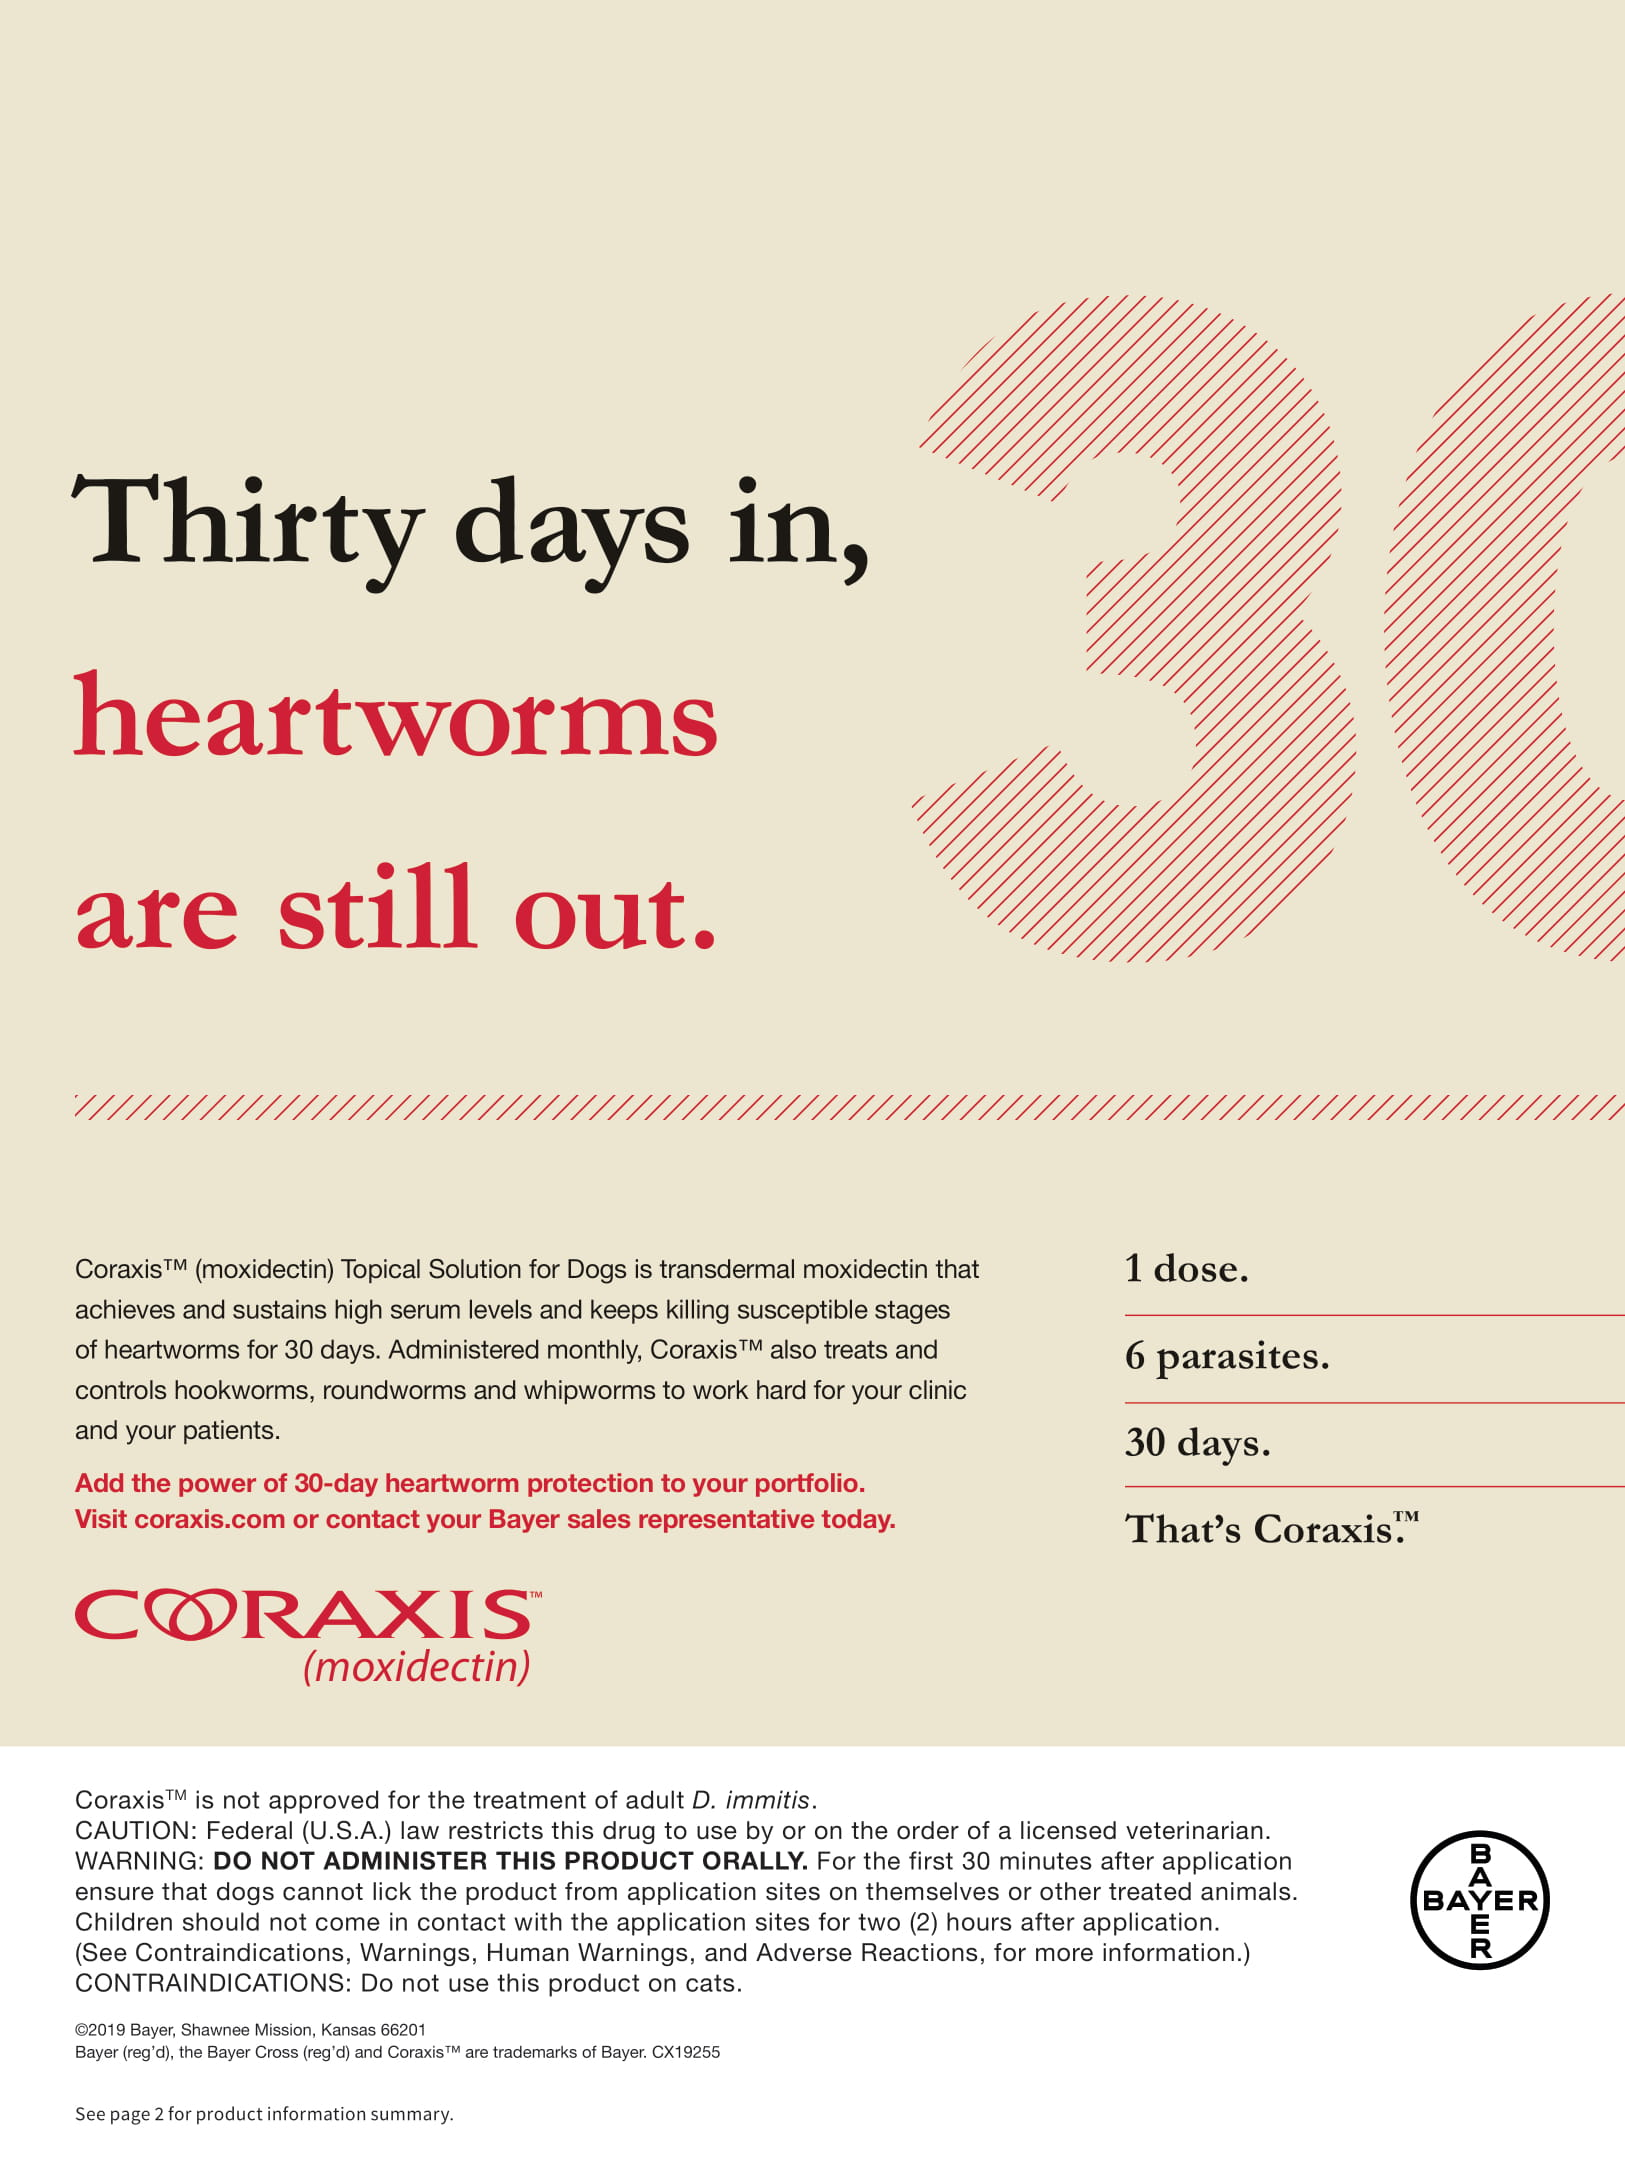 Coraxis CB Jan 2020